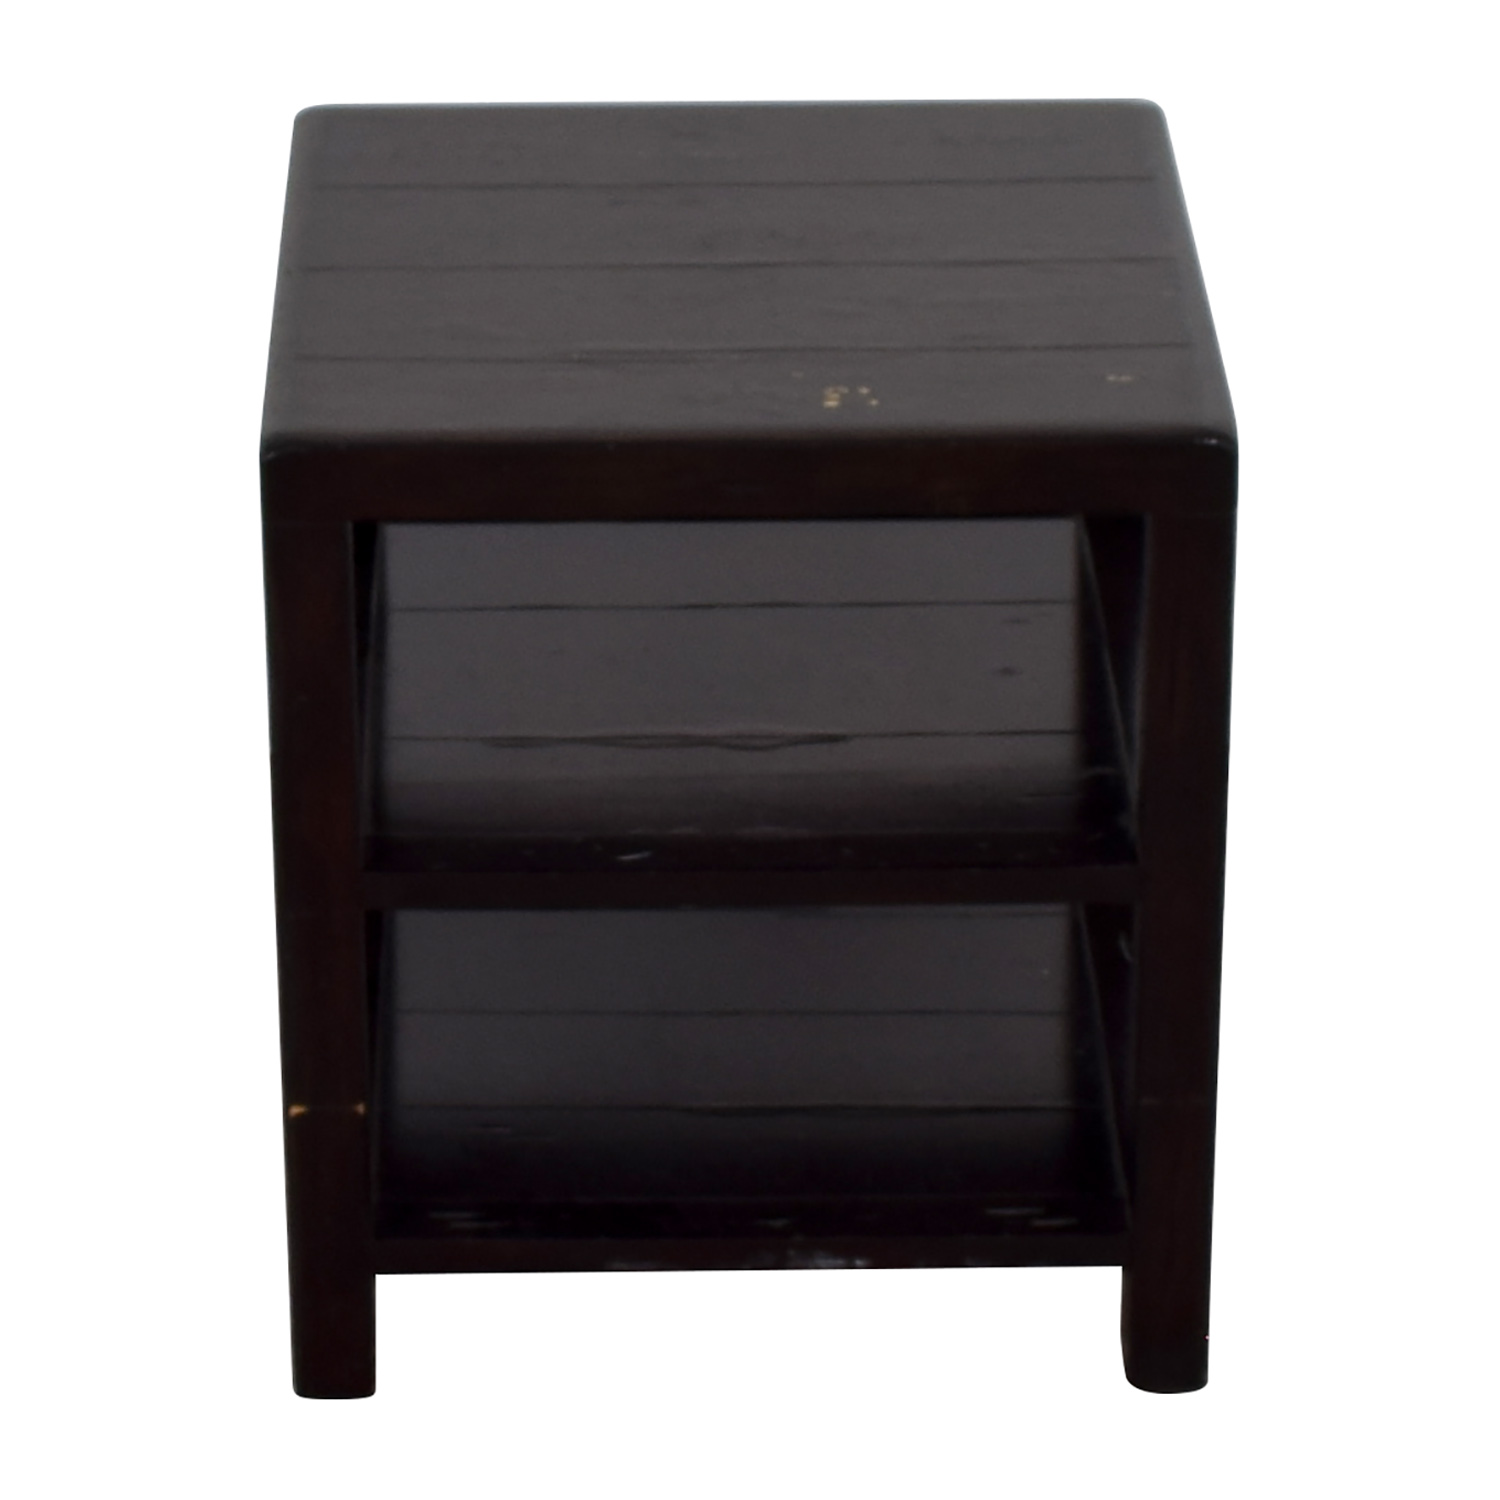 Crate & Barrel Brown End Table / End Tables